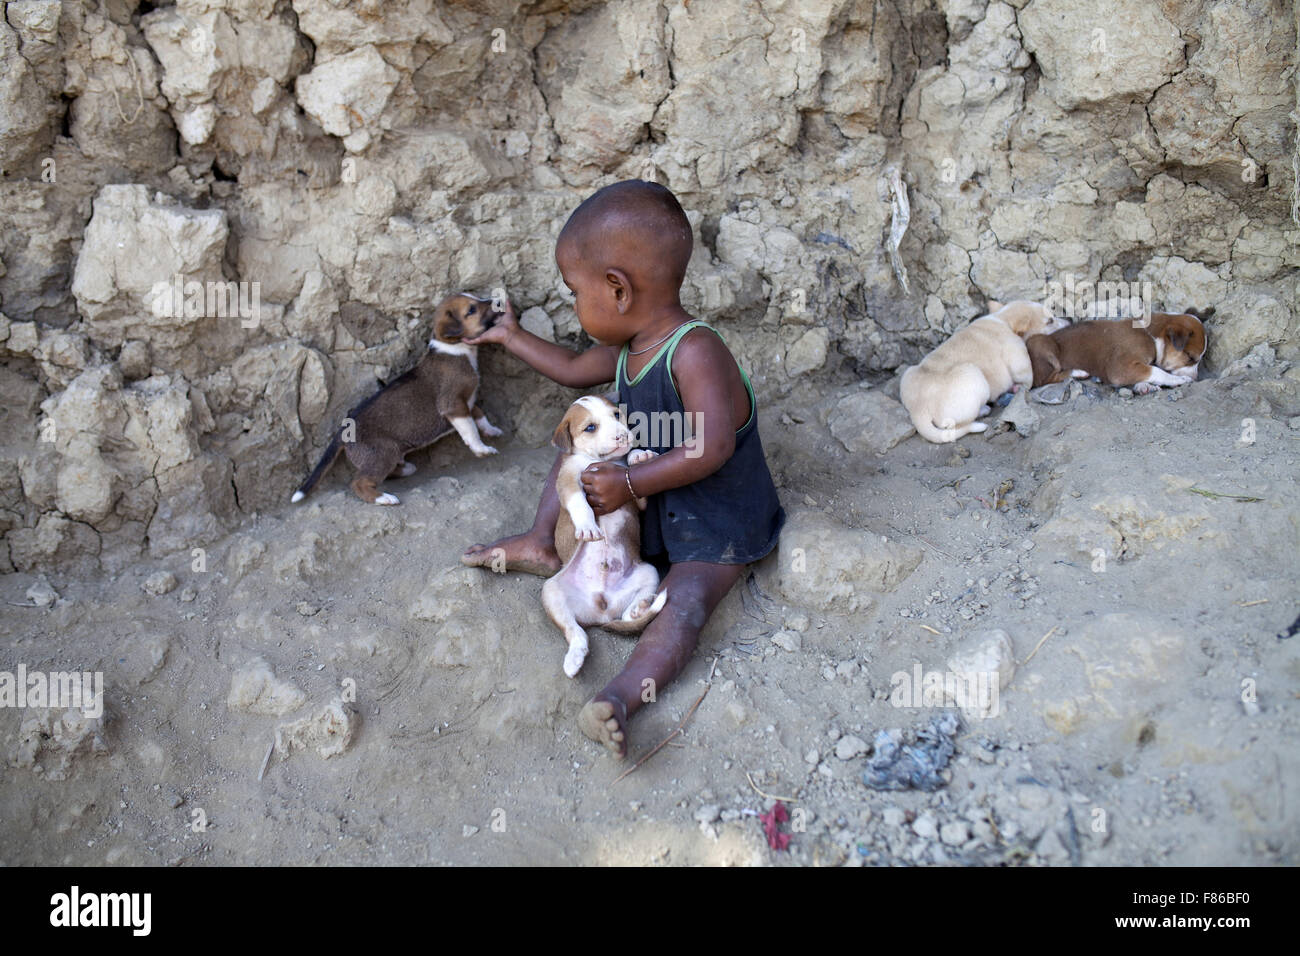 Nov. 29, 2015 - Cox'S Bazar, Bangladesh - COX's BAZAR, BANGLADESH - November 29: Achild playing with dog's - Stock Image